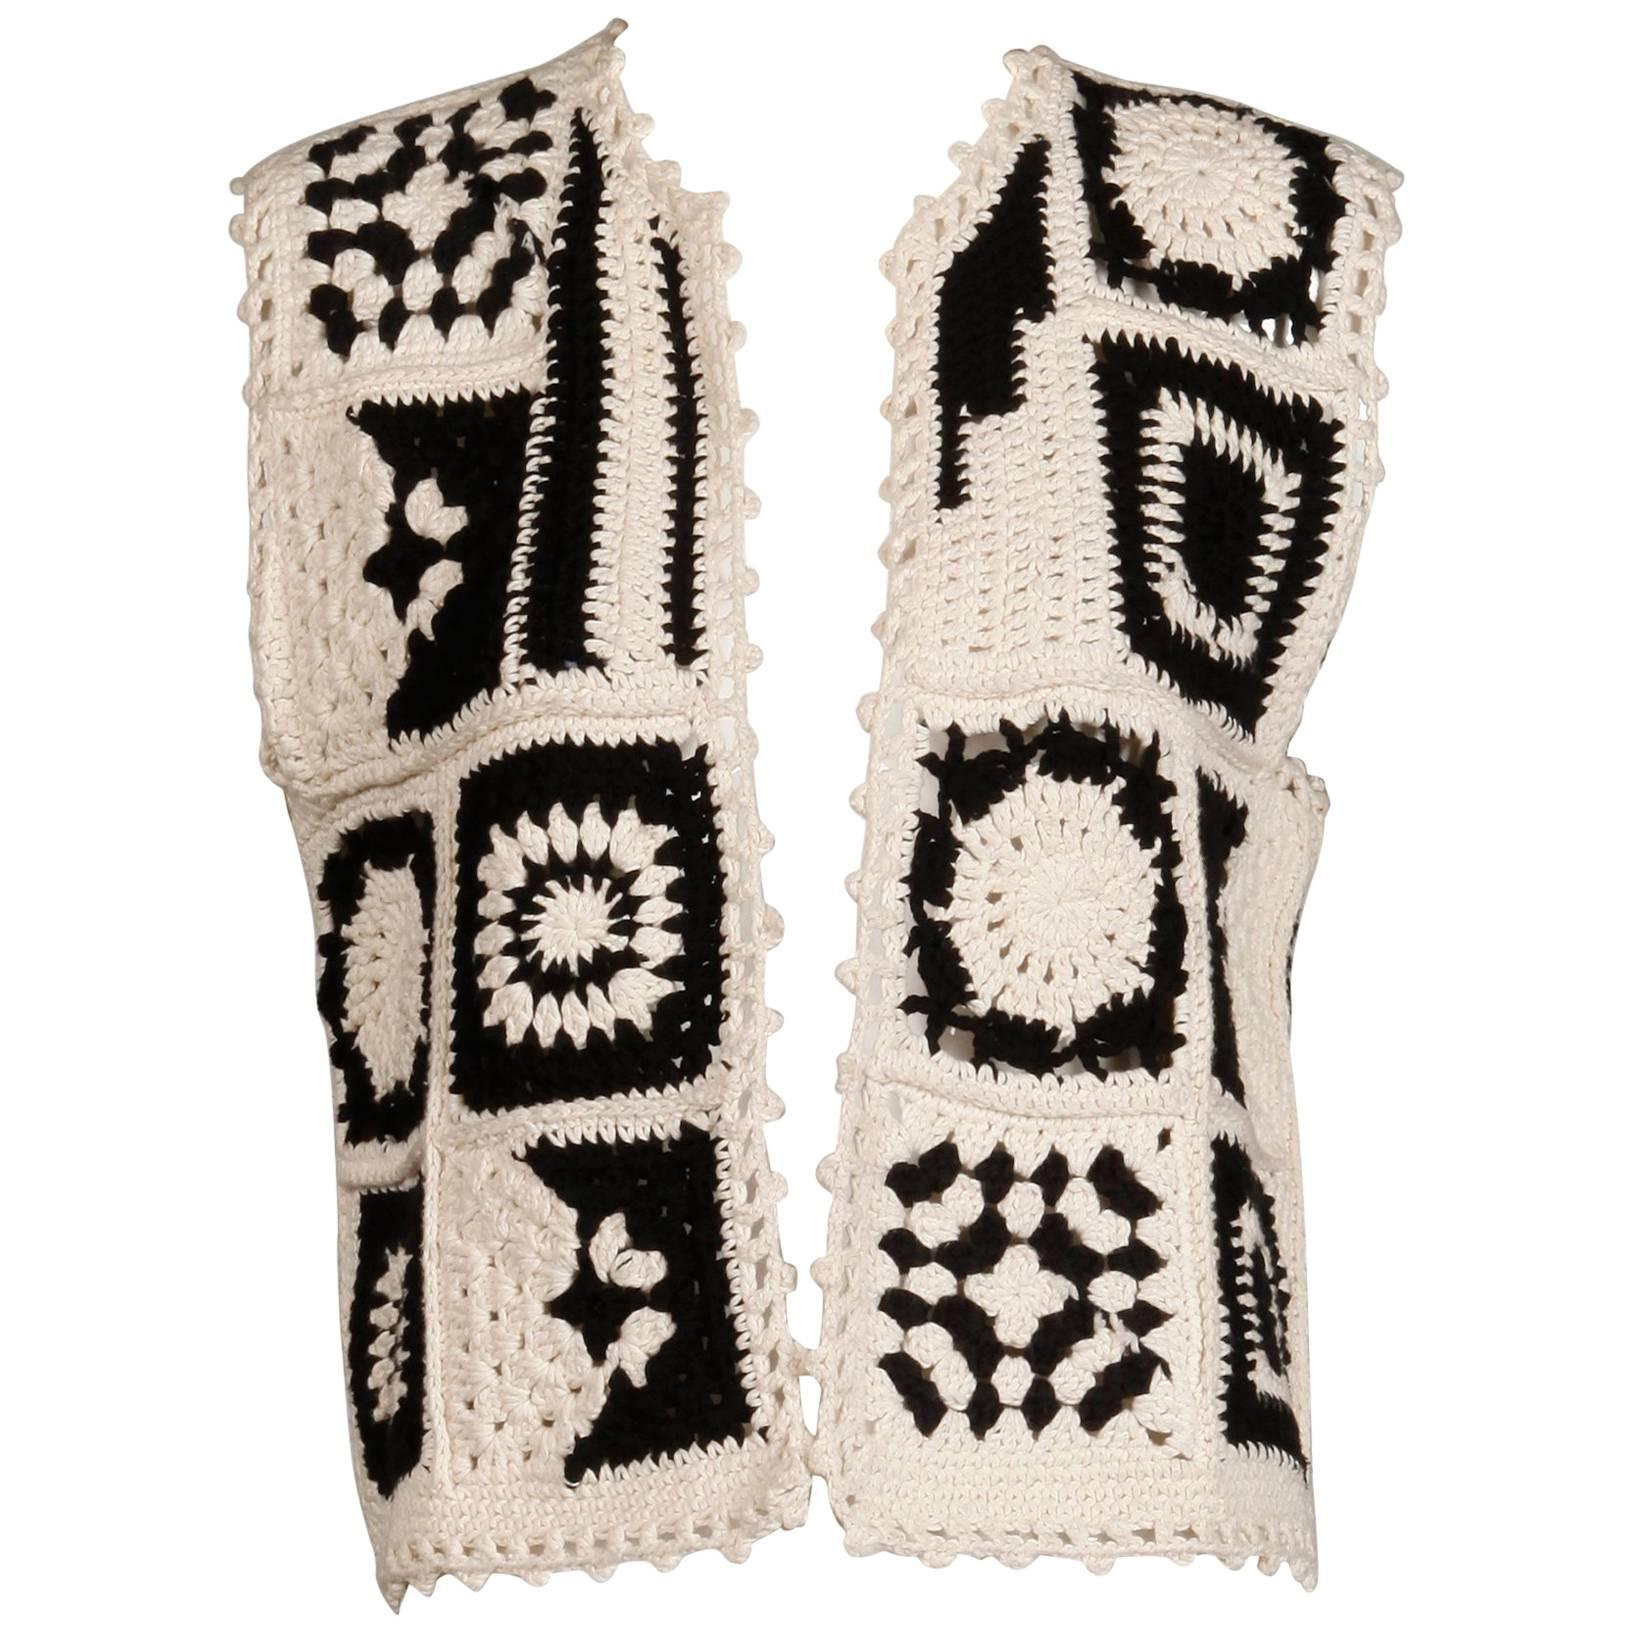 1990s Moschino Couture Vintage Crochet Granny Squares Boho Vest